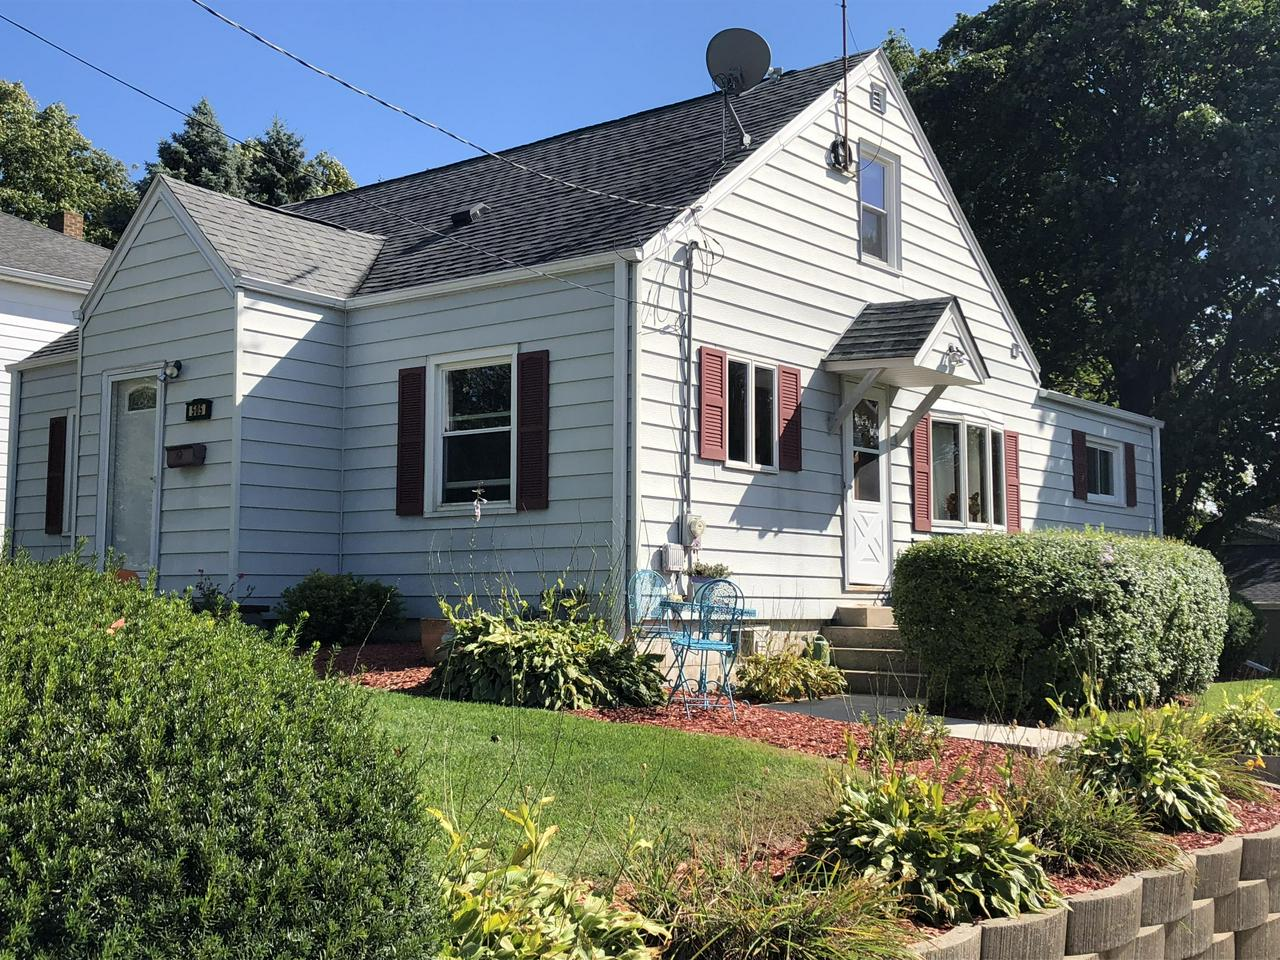 Fall in love with the charm of this 3 Bdrm, 1 BA Cape Cod! Situated on a corner lot in Hartford. 2.5 detached garage (new roof, siding, door in 2010. Kitchen features custom built cabinets (2014), new countertops (2014). Beautiful hardwood floors in the kitchen and dining room. Entertain guests in the formal dining room or rec room in the lower level. Newer carpet in living room, rec room and bedrooms on the first floor. New windows in 2010.  All appliances included. Close to schools and parks!